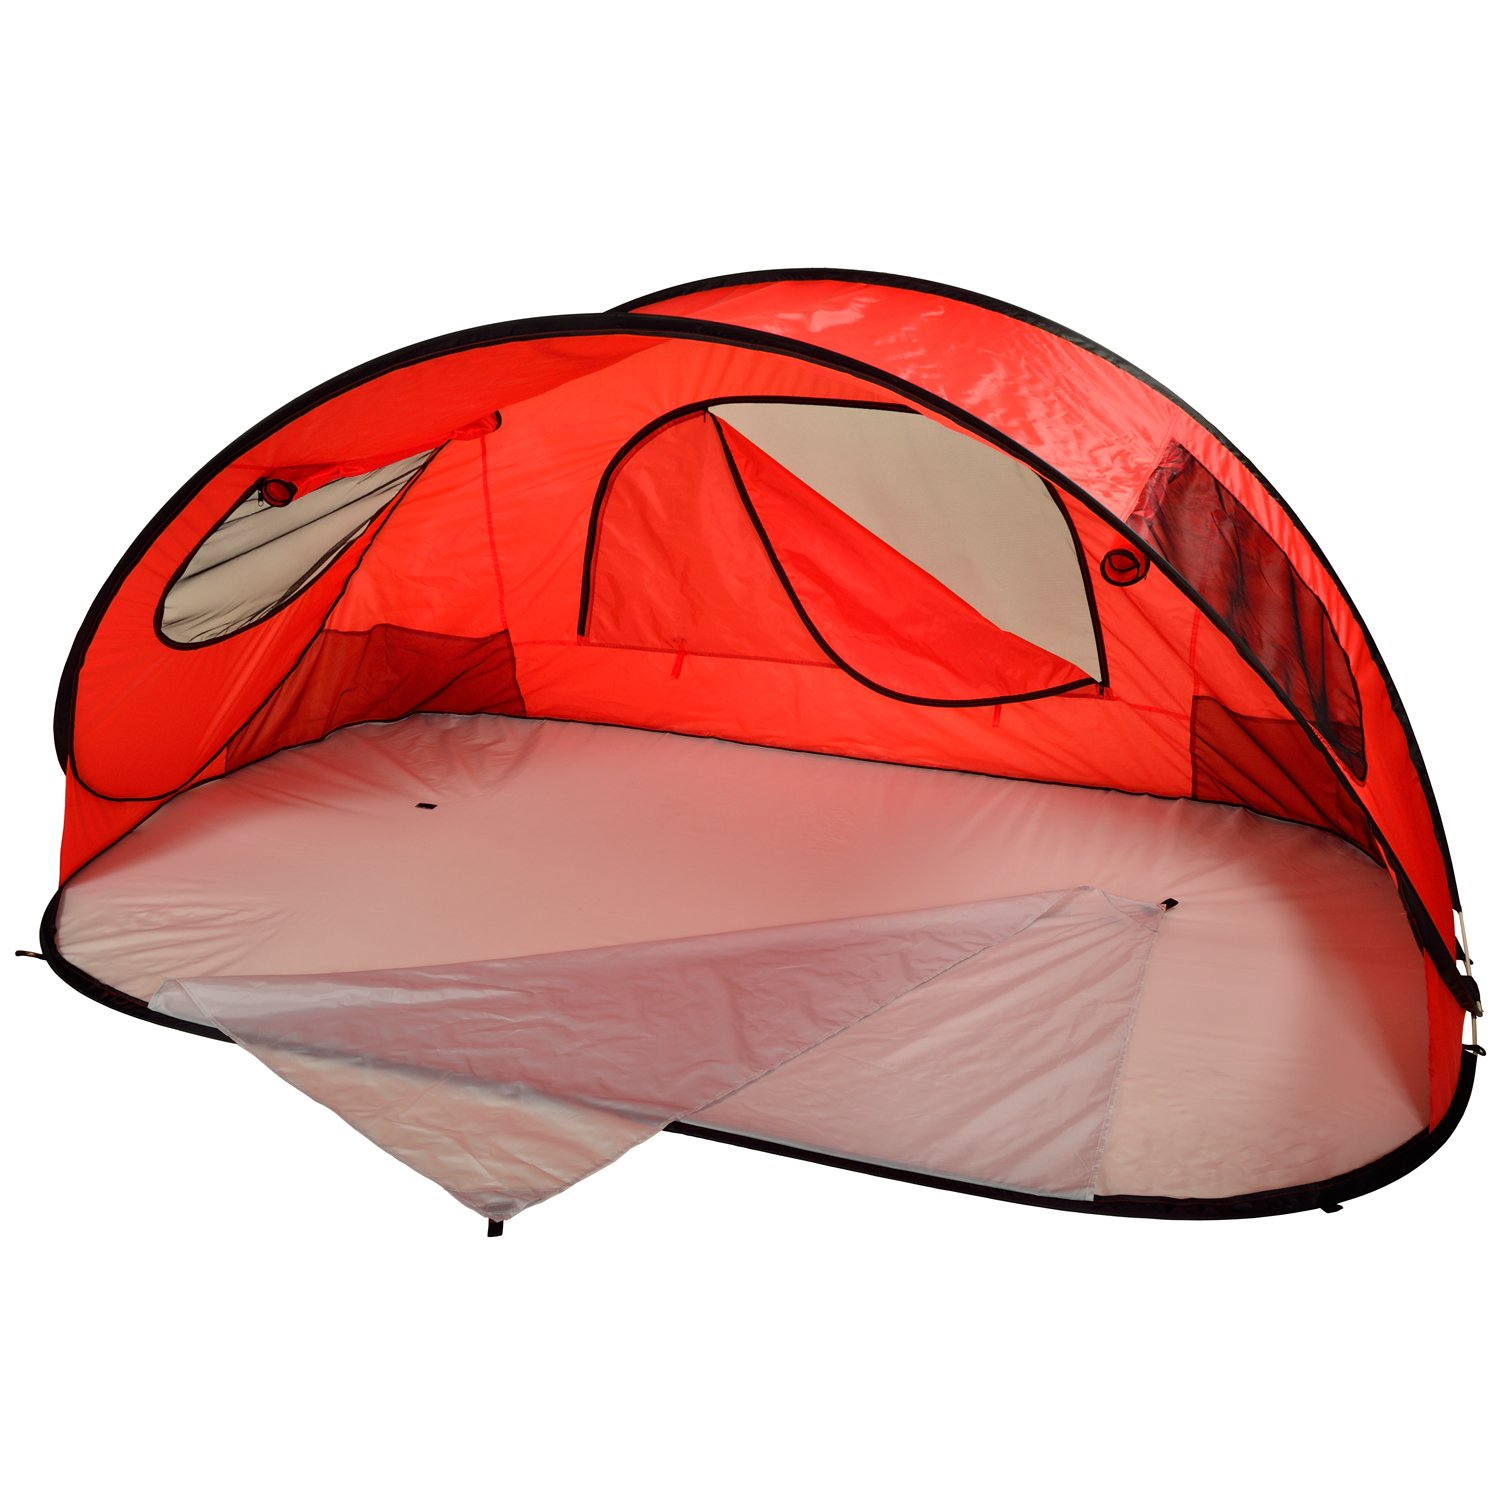 Amazon.com Picnic at Ascot Extra Large Instant Easy Beach Tent Sun Shelter - Red Kitchen u0026 Dining  sc 1 st  Amazon.com & Amazon.com: Picnic at Ascot Extra Large Instant Easy Beach Tent ...